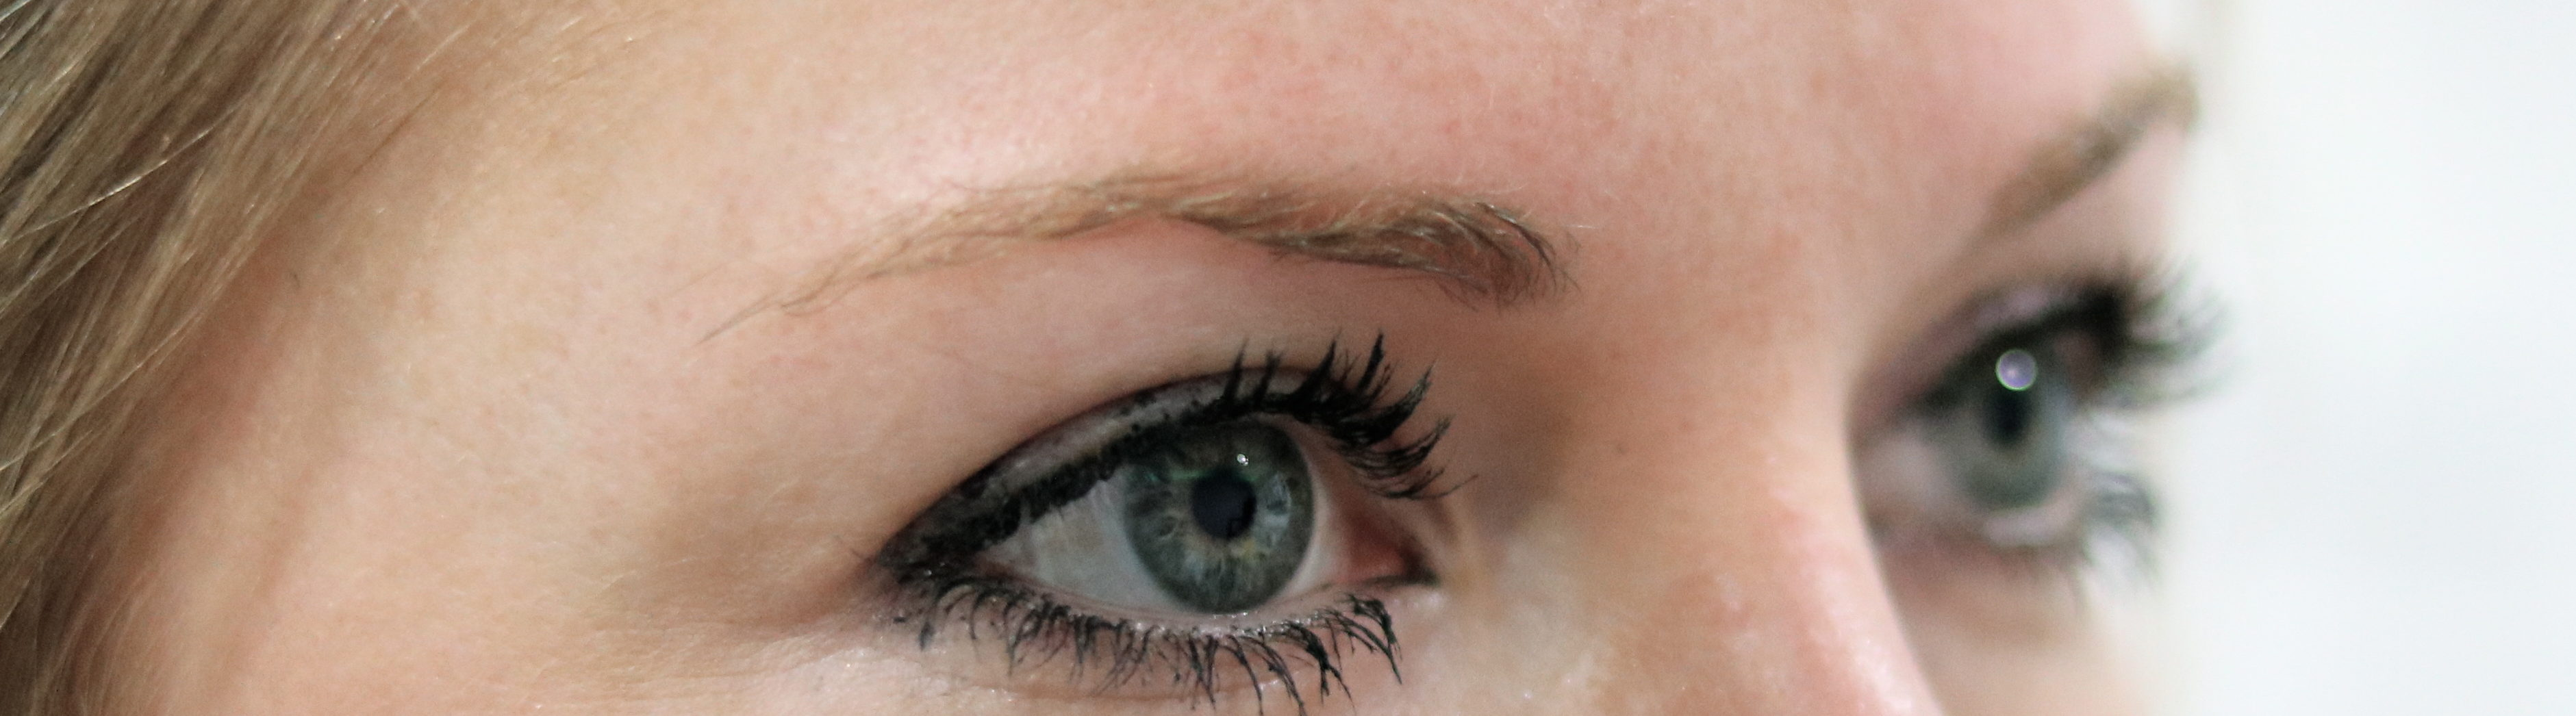 Should you get microblading?